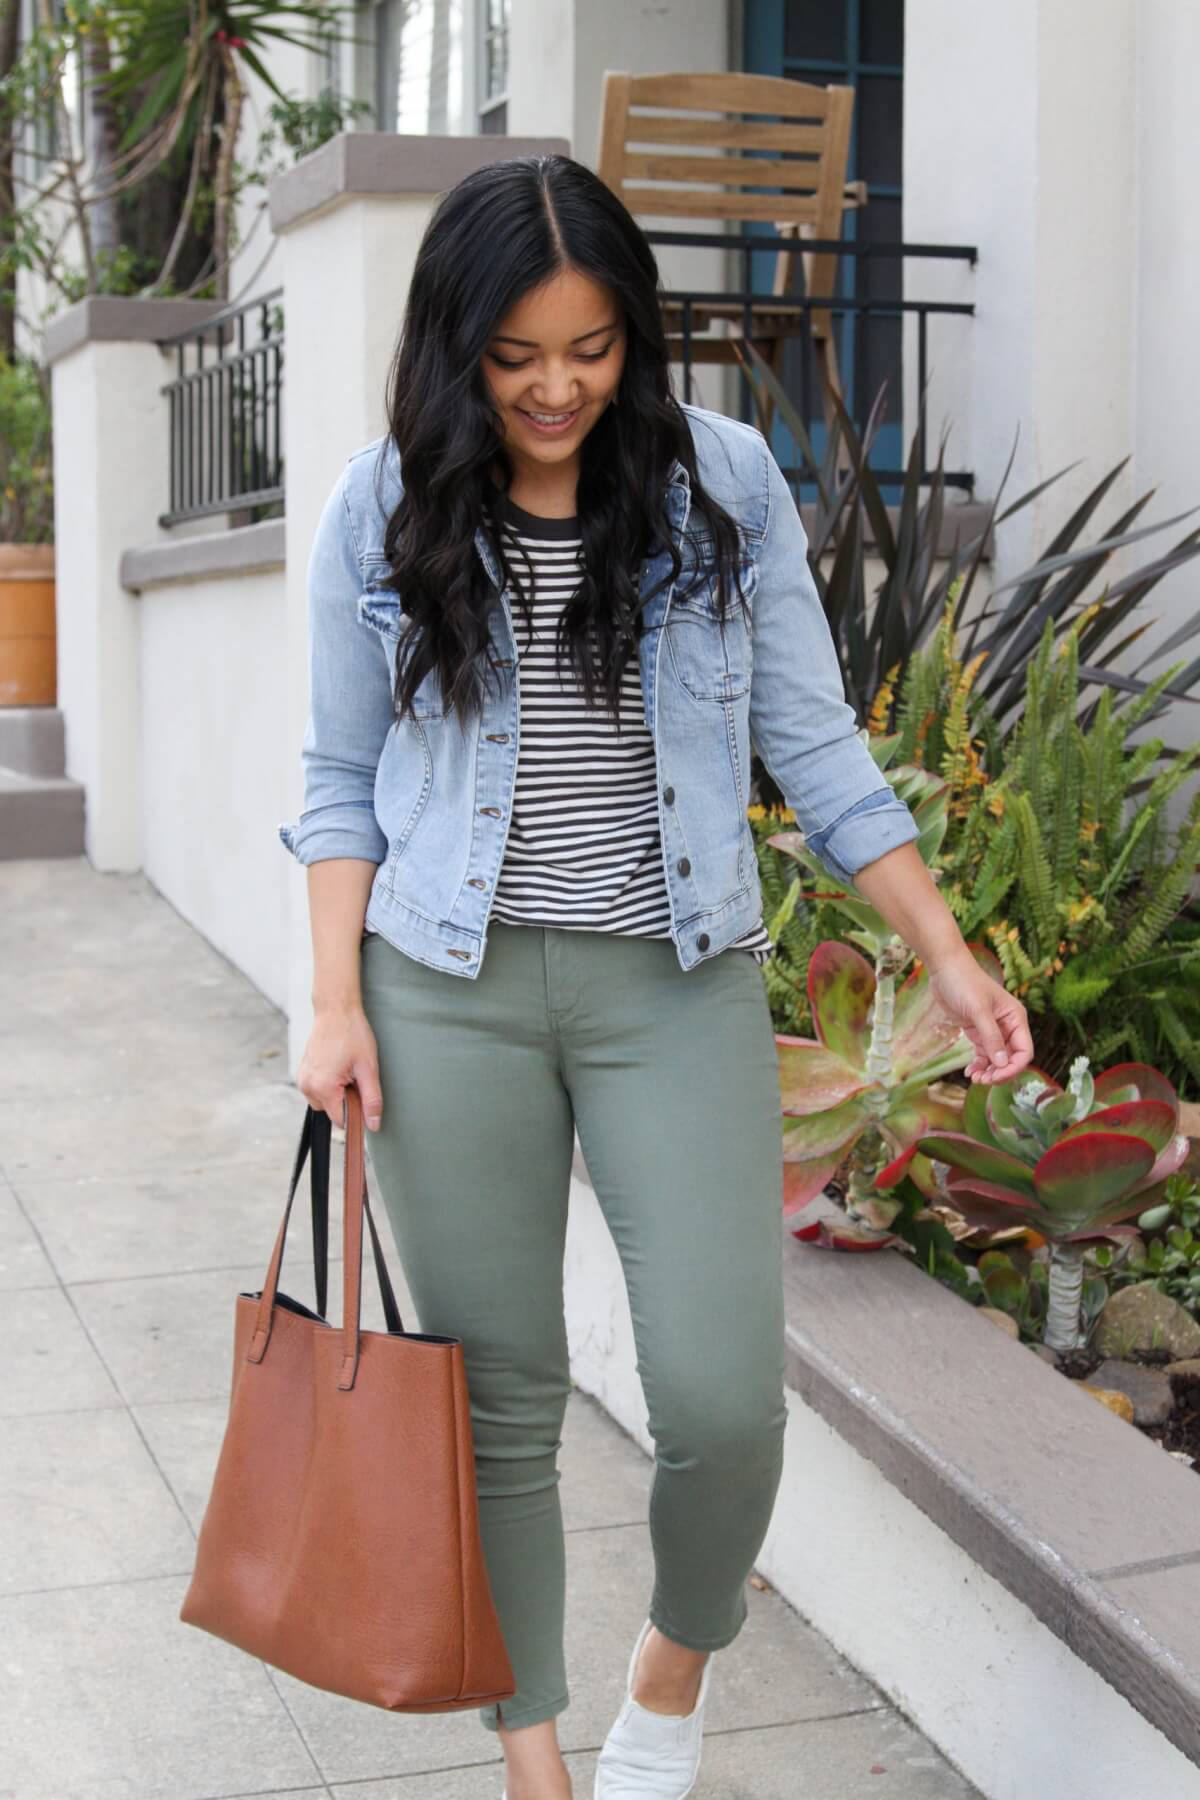 Casual Outfit: light denim jacket + black and white striped tee + olive pants + white slip-on sneakers + tan tote